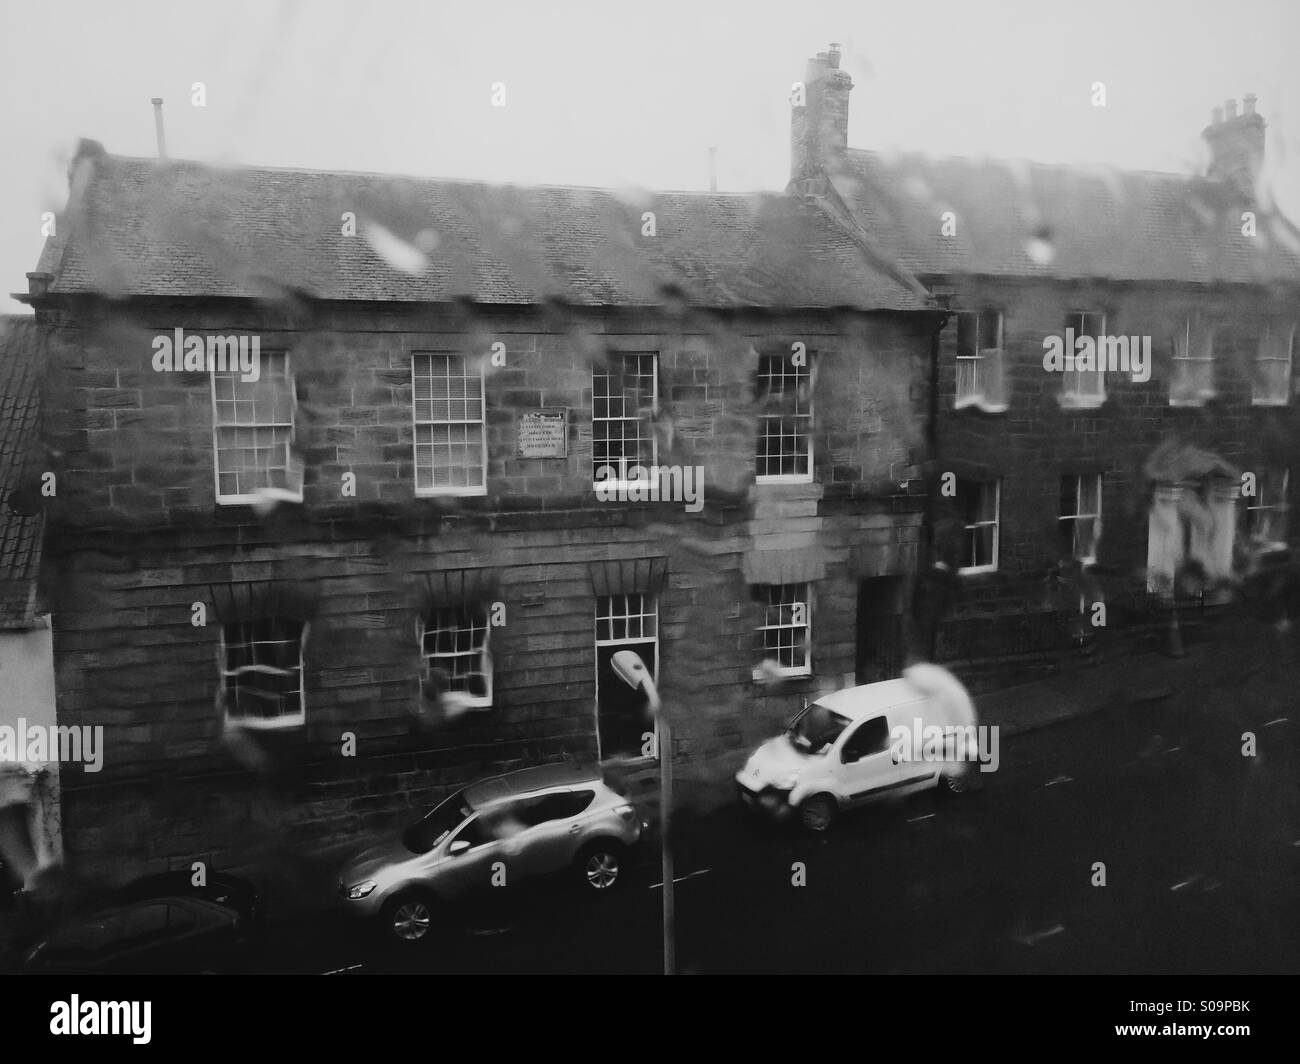 Miserable British weather - heavy rain on a window overlooking a residential street in Northumberland, UK. - Stock Image